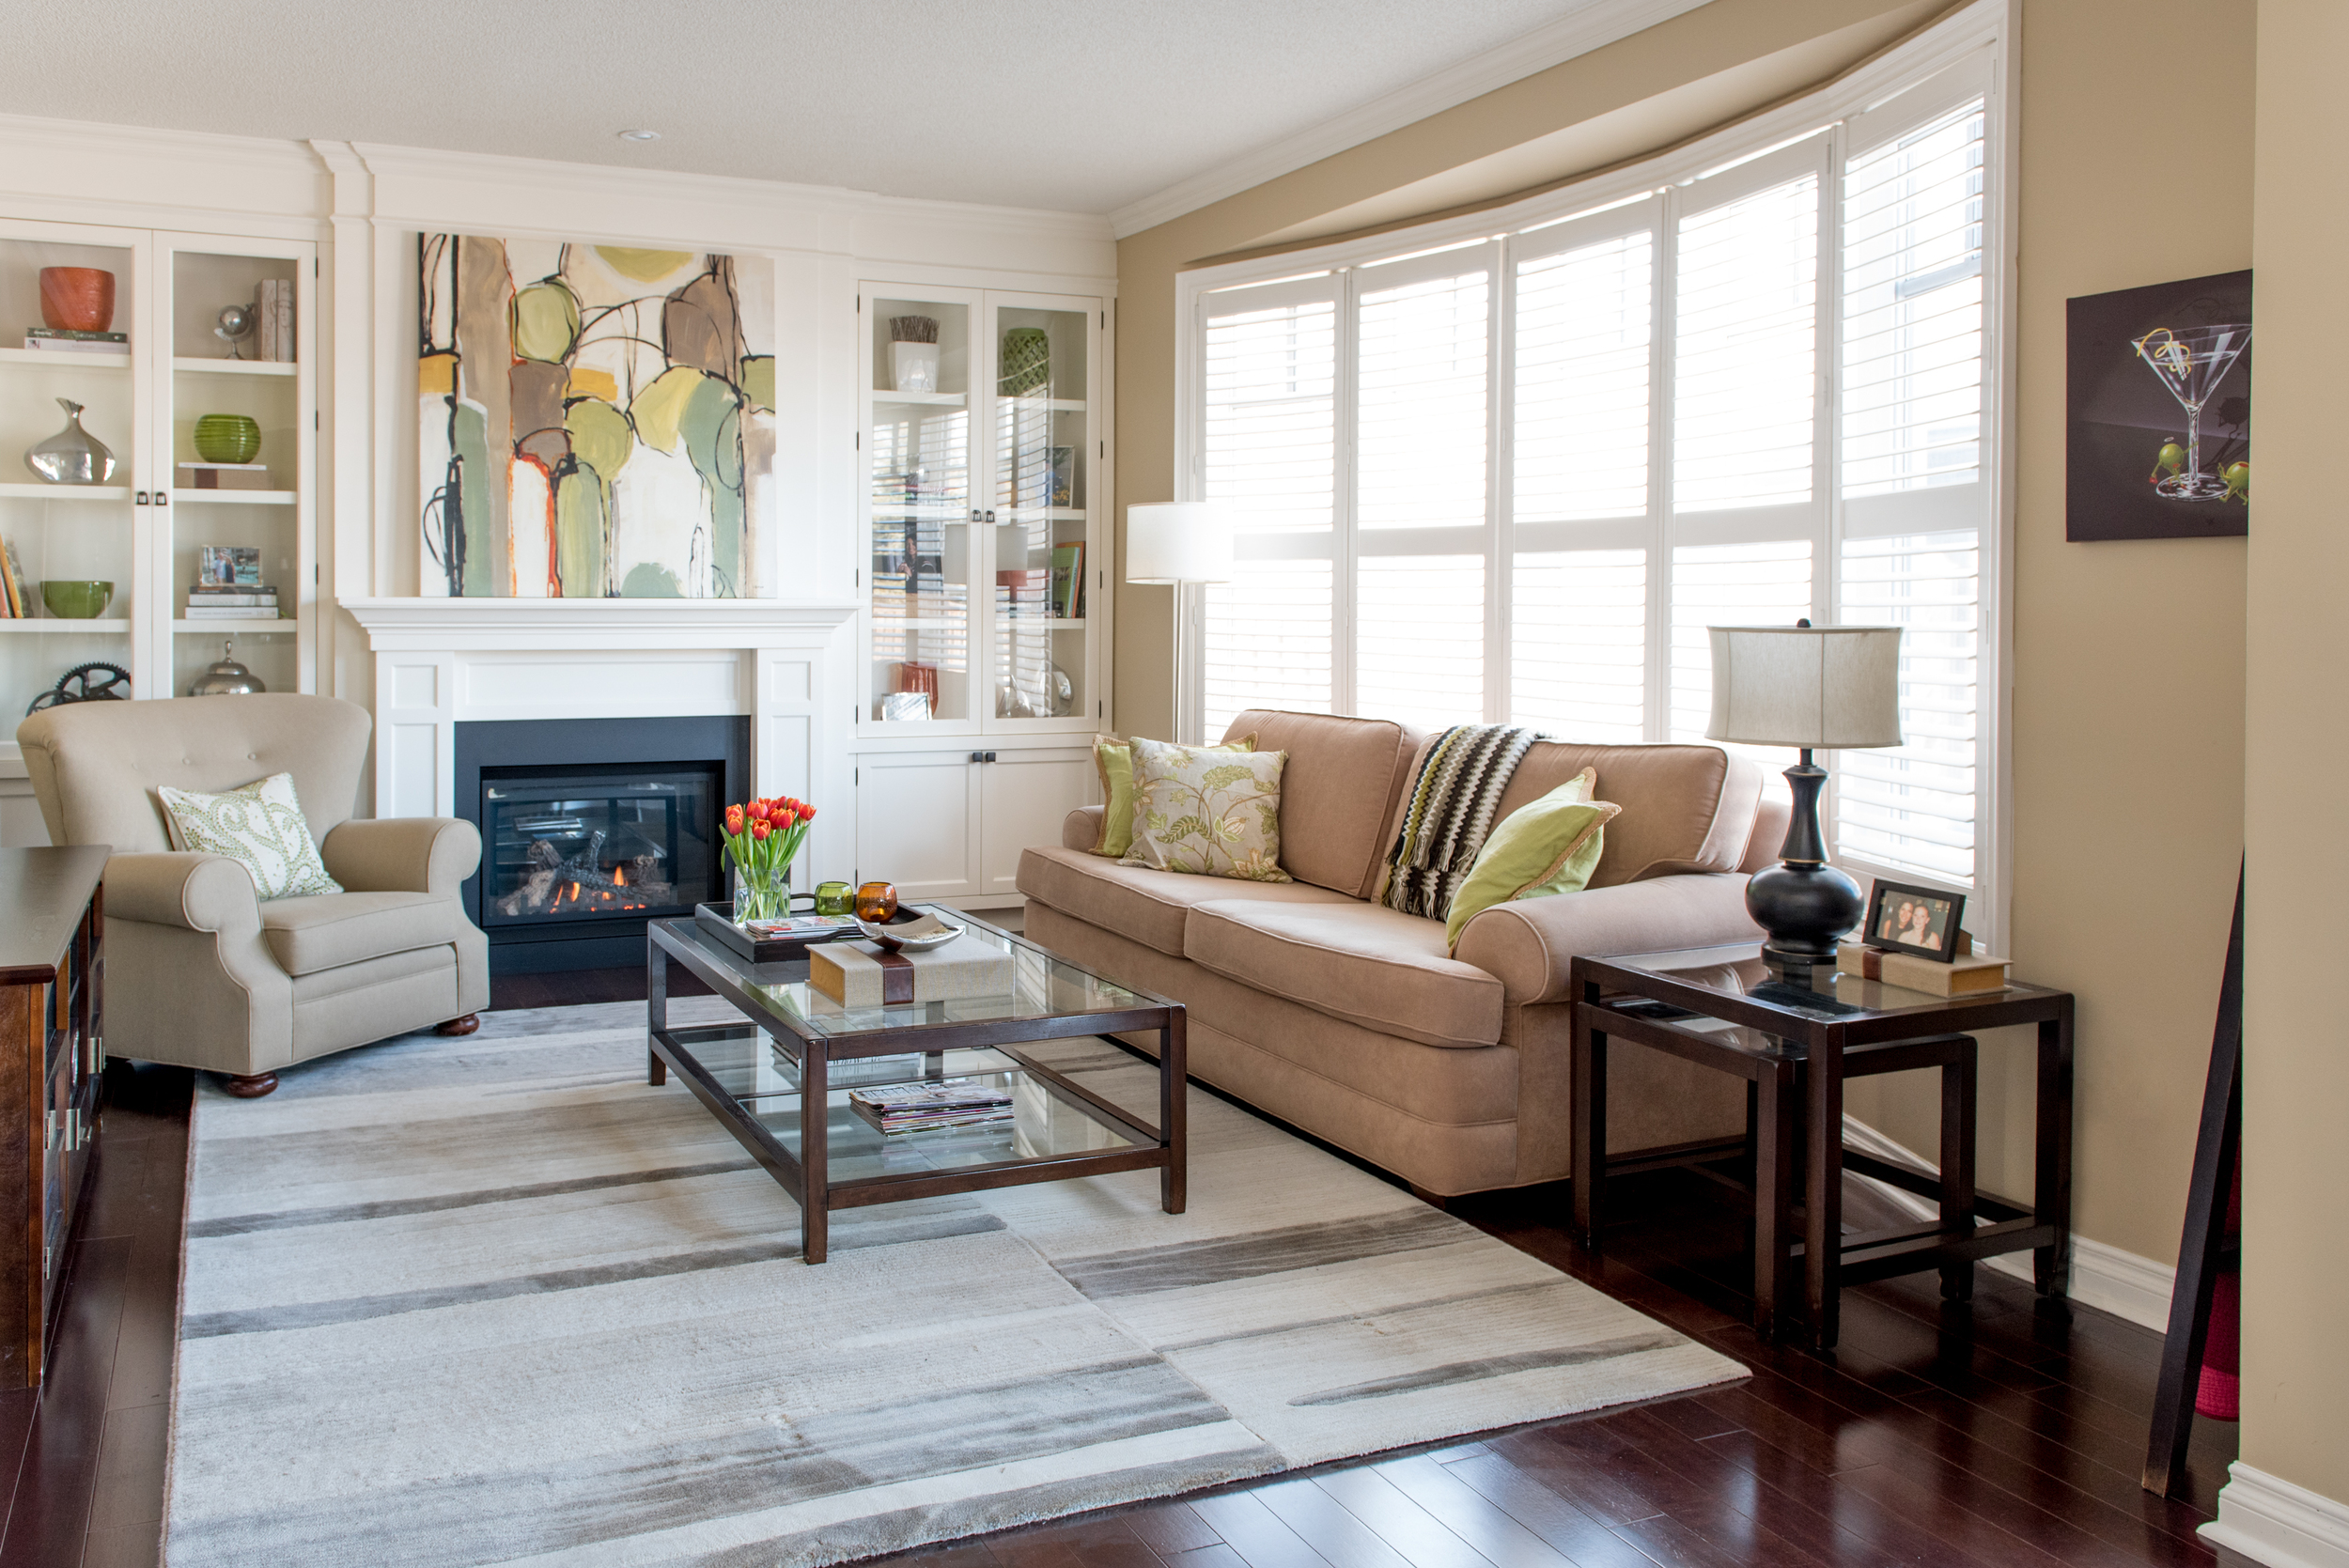 Love the warmth of the Family Room!